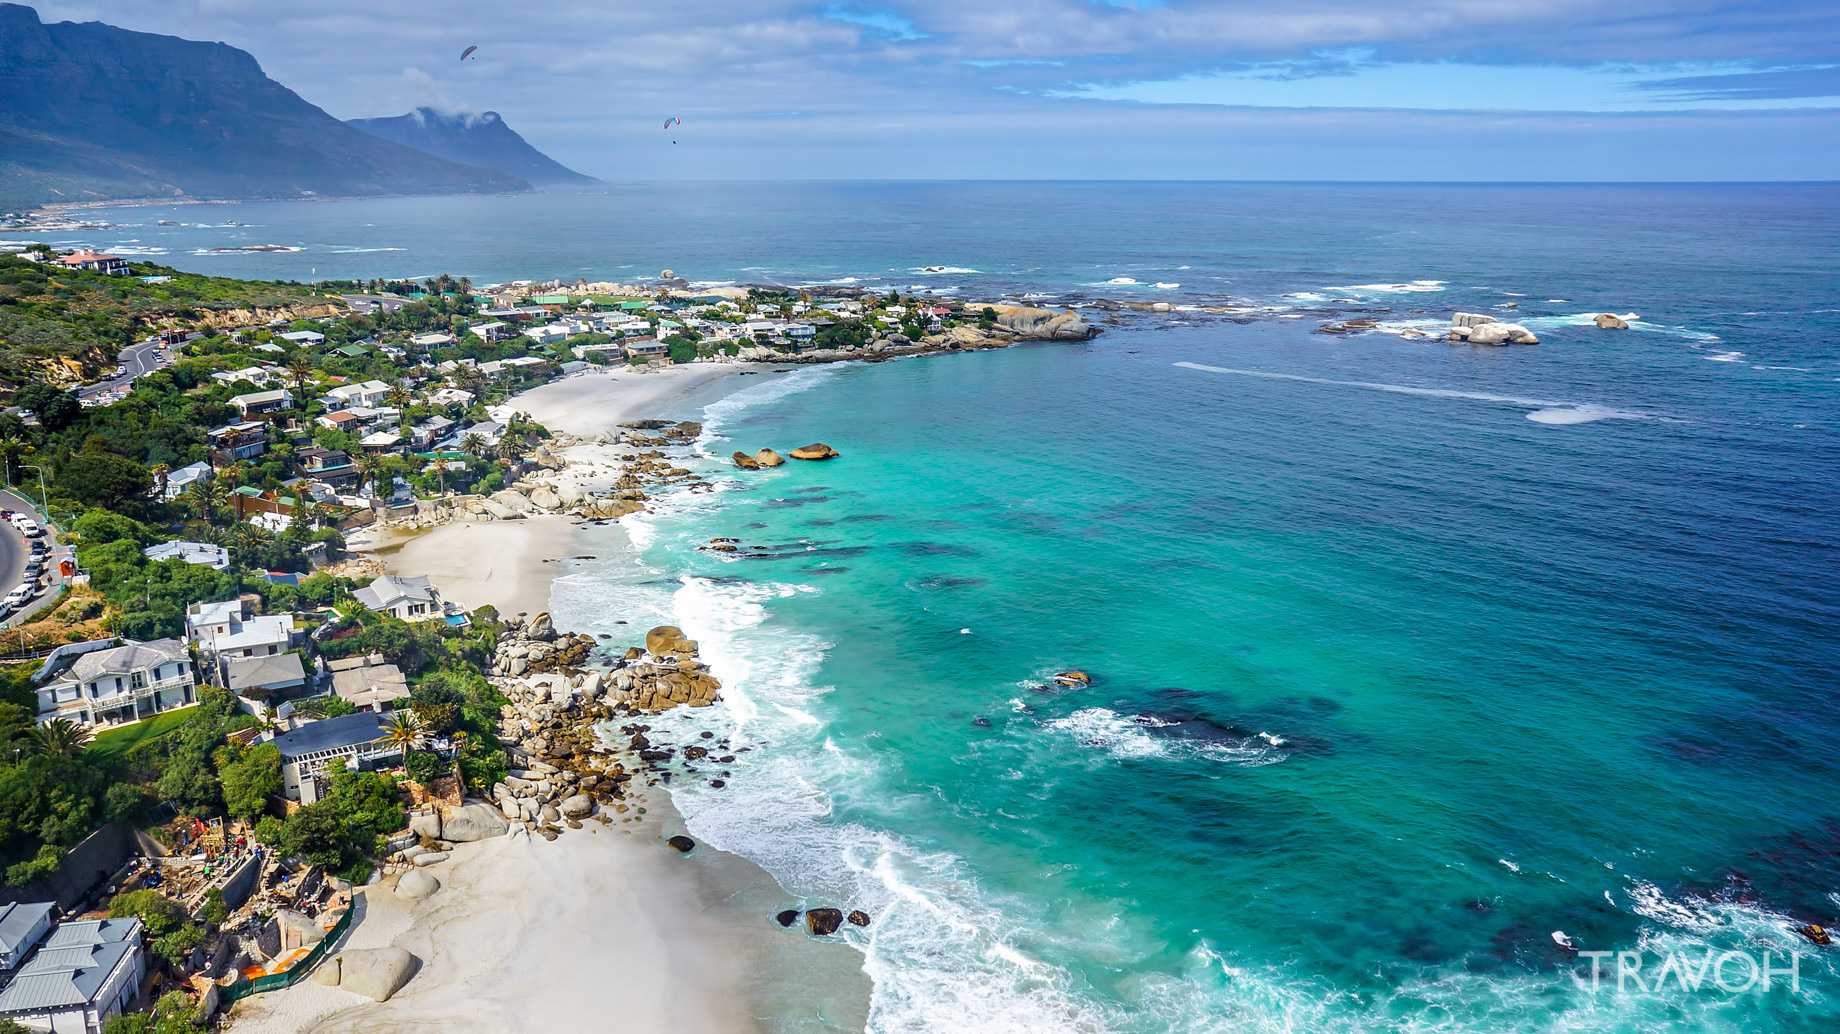 Clifton Beaches - Exploring 10 of the Top Beaches in Cape Town South Africa